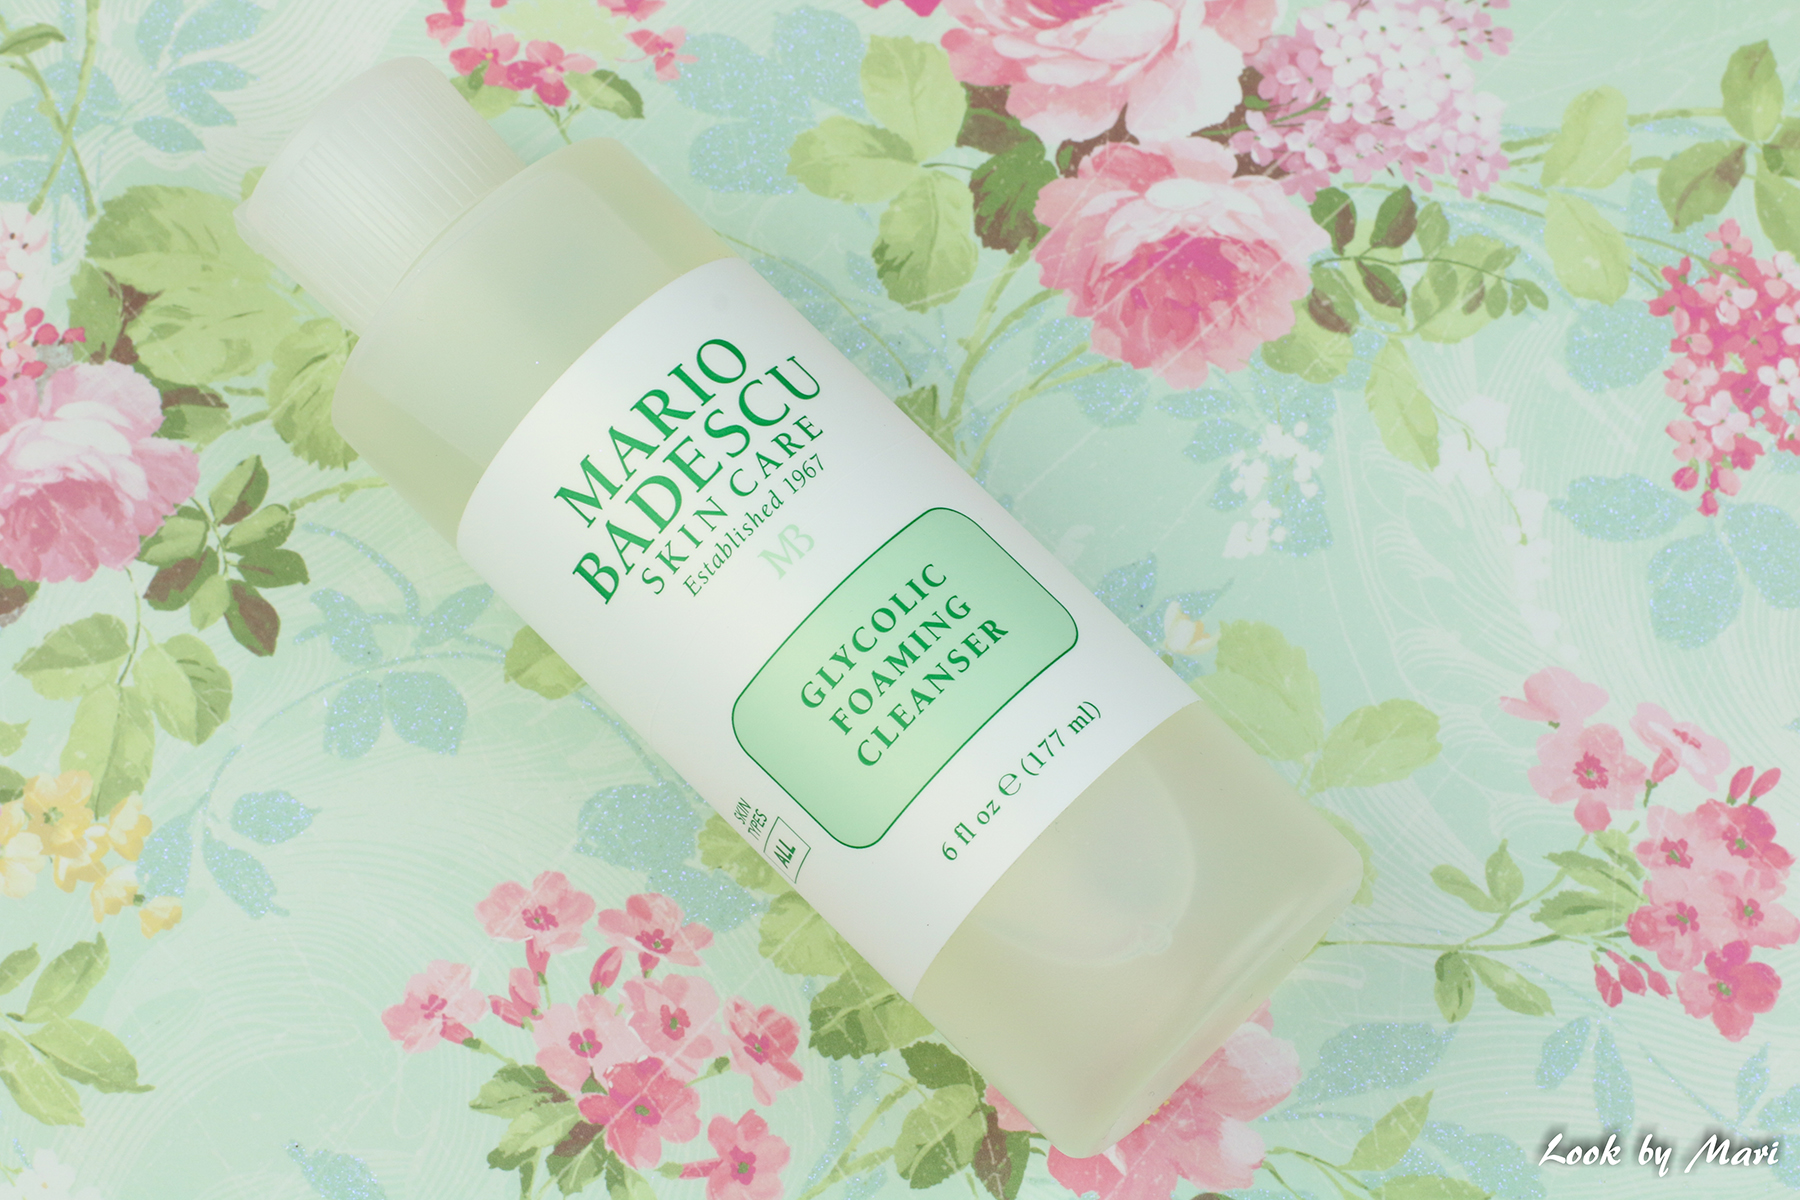 8 mario badescu glycolic foaming cleanser review for combination skin